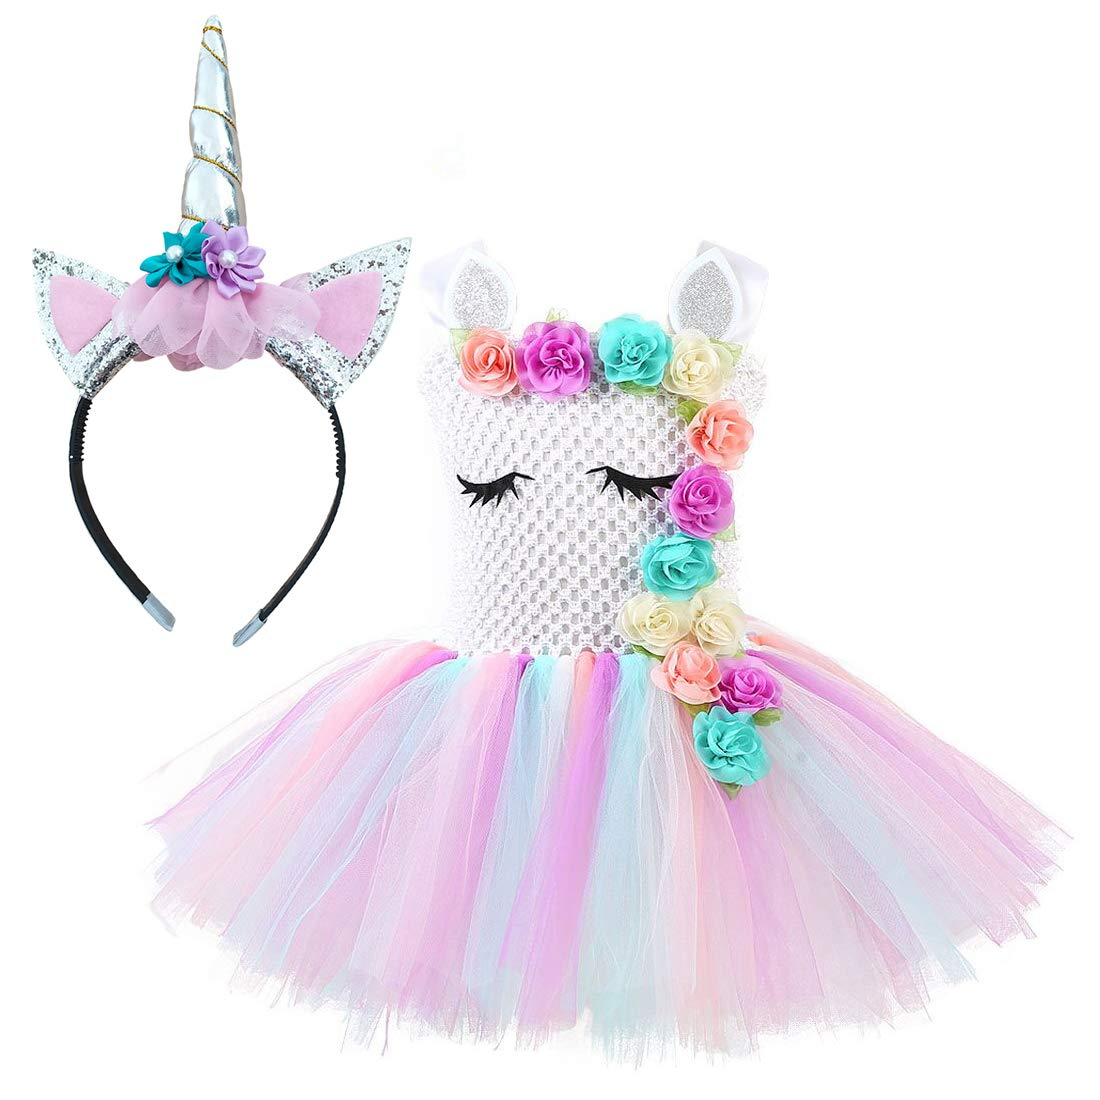 Unicorn Costume for Girls Dress Up Clothes for Little Girls Rainbow Unicorn Tutu with Headband Birthday Gift by rainbow estrella (Image #1)